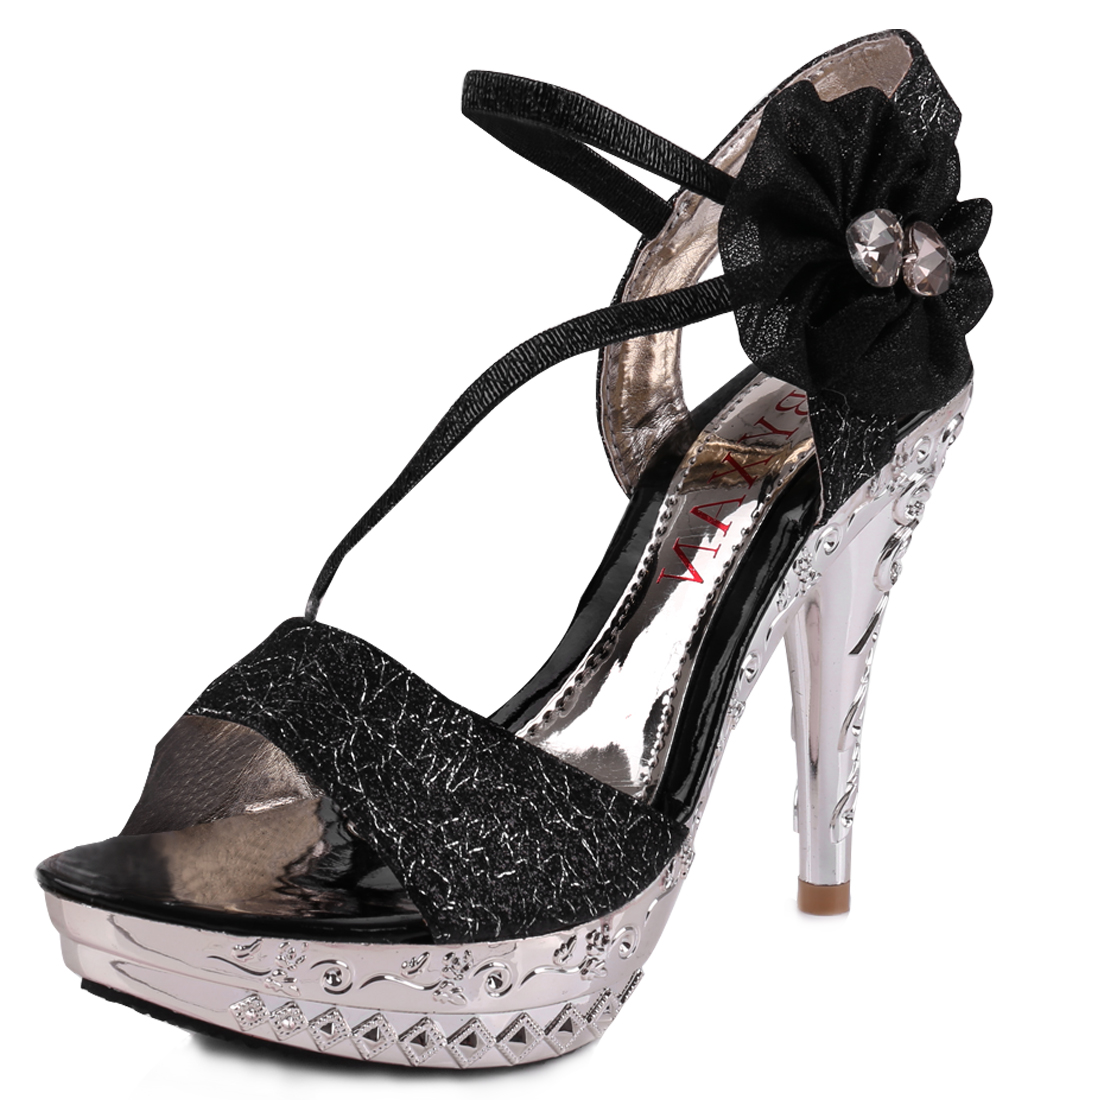 Women Open Toe Flower Decor Sandals Black Silver Tone US 6.5